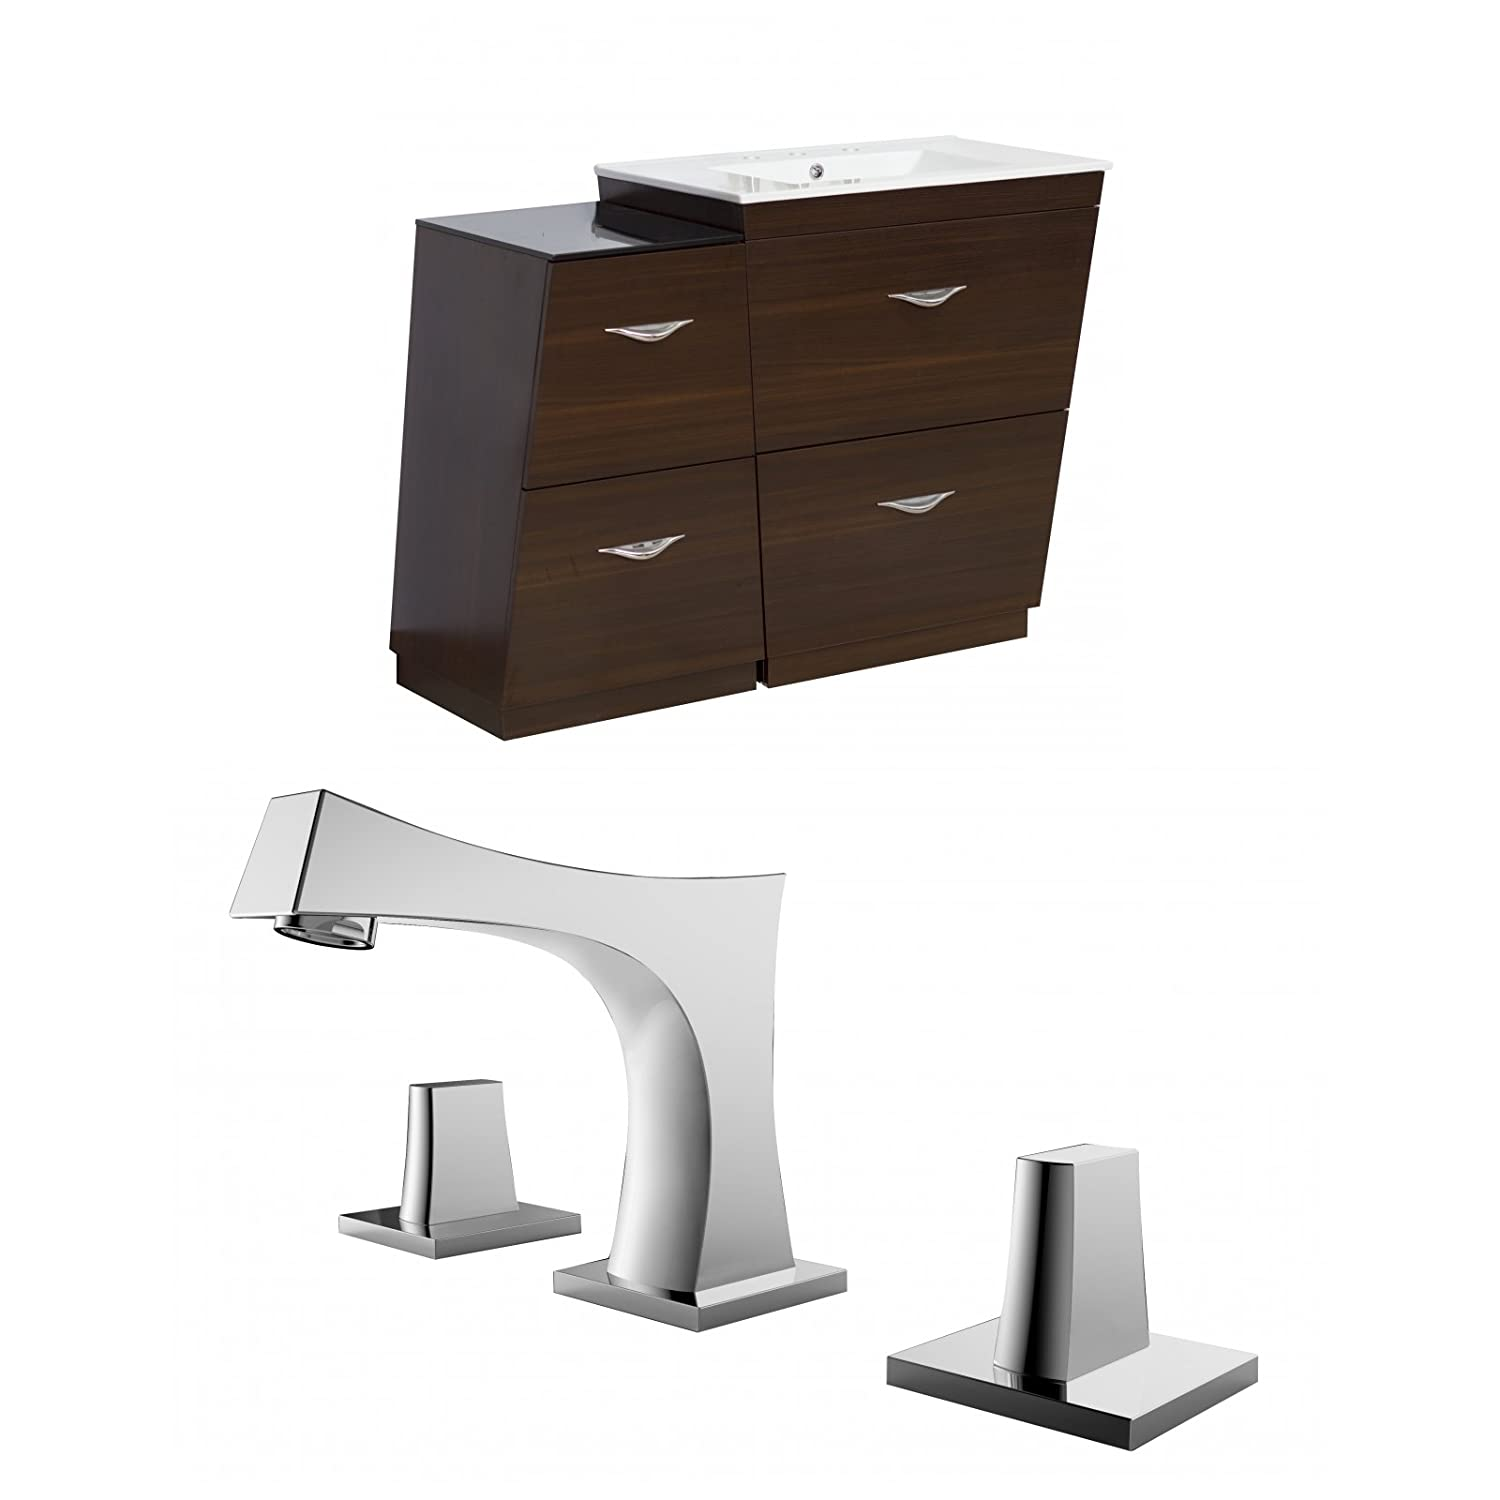 "durable modeling Jade Bath JB-9225 40.5"" W x 18.5"" D Plywood-Melamine Vanity Set with 8"" o.c. CUPC Faucet, Wenge"